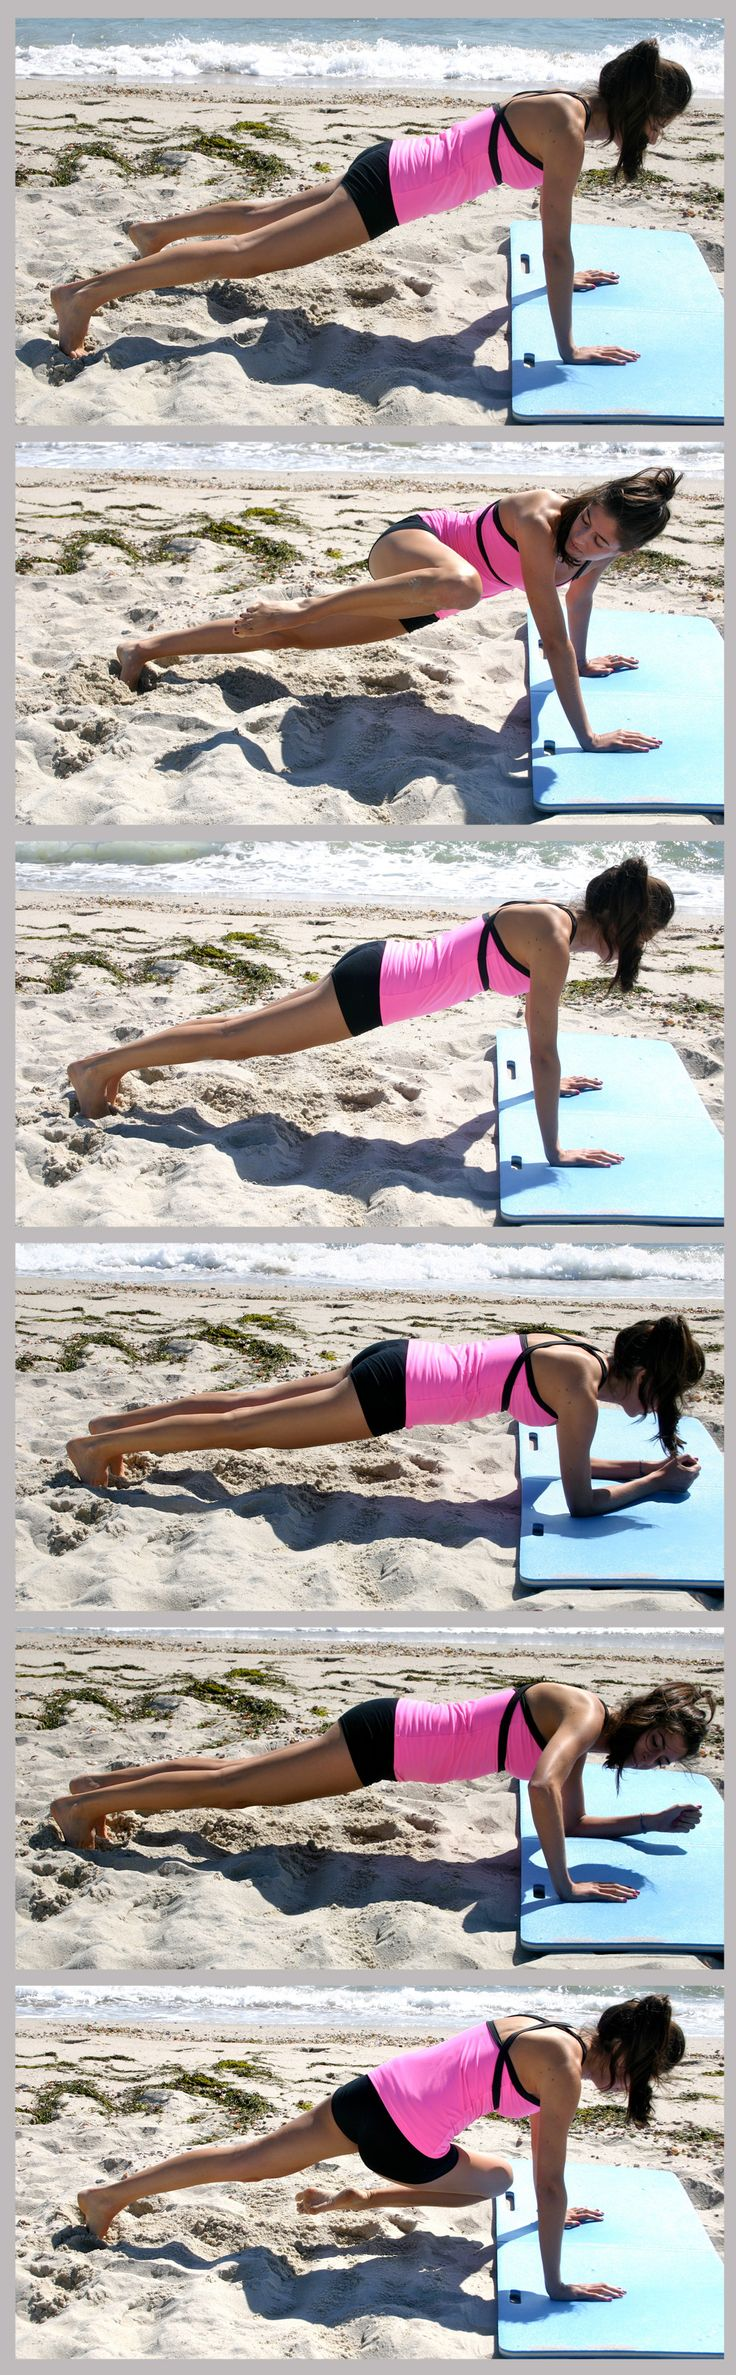 Plank Workout - Do each of the 6 moves for 20 seconds. Repeat entire 2-minute circuit 3 times, taking a 30-second break in between each round